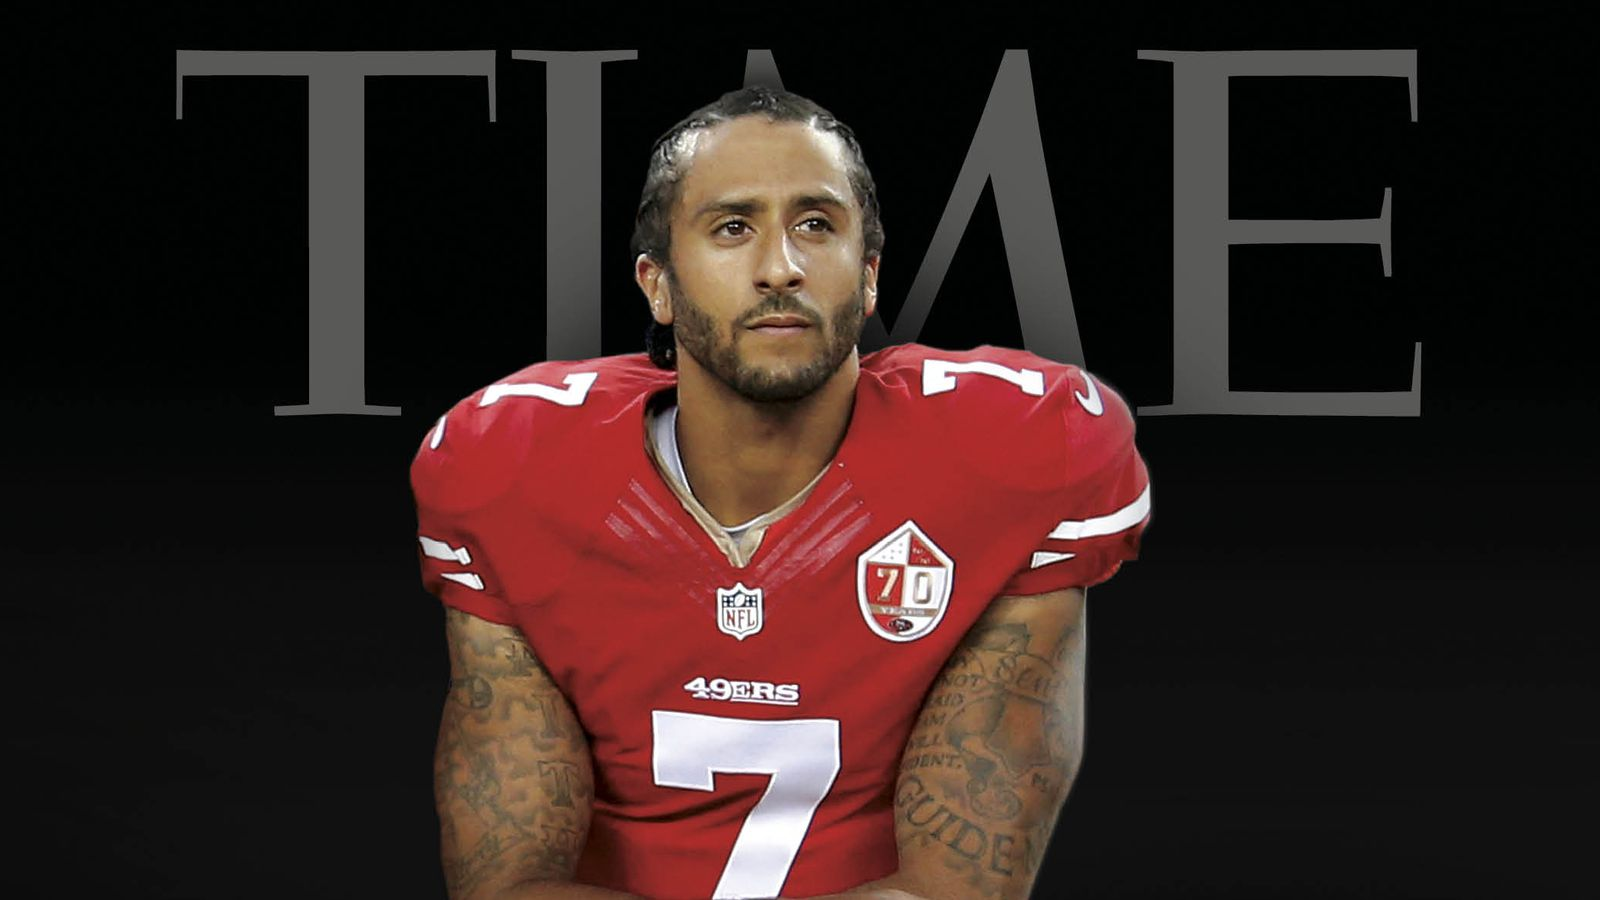 Colin Kaepernick Kneeling Protest Featured On Cover Of